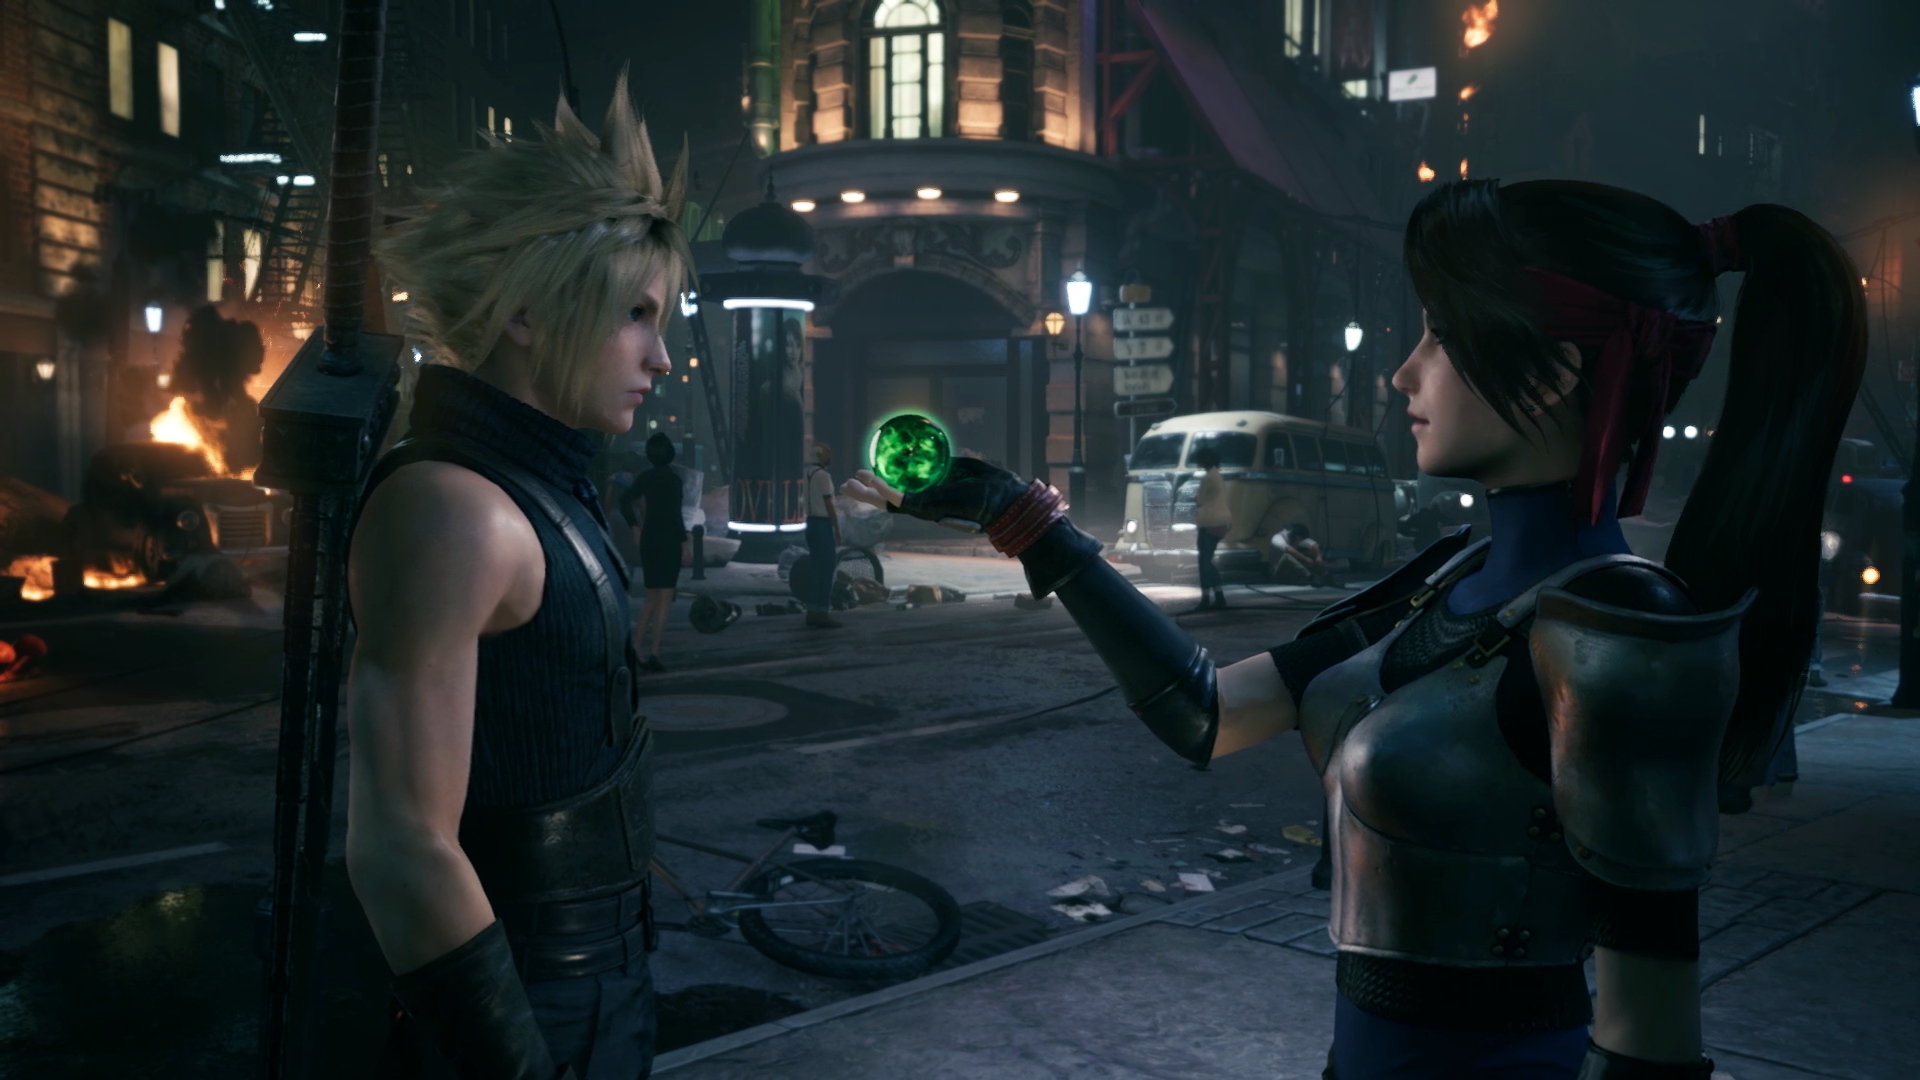 Final Fantasy VII Remake on PS4